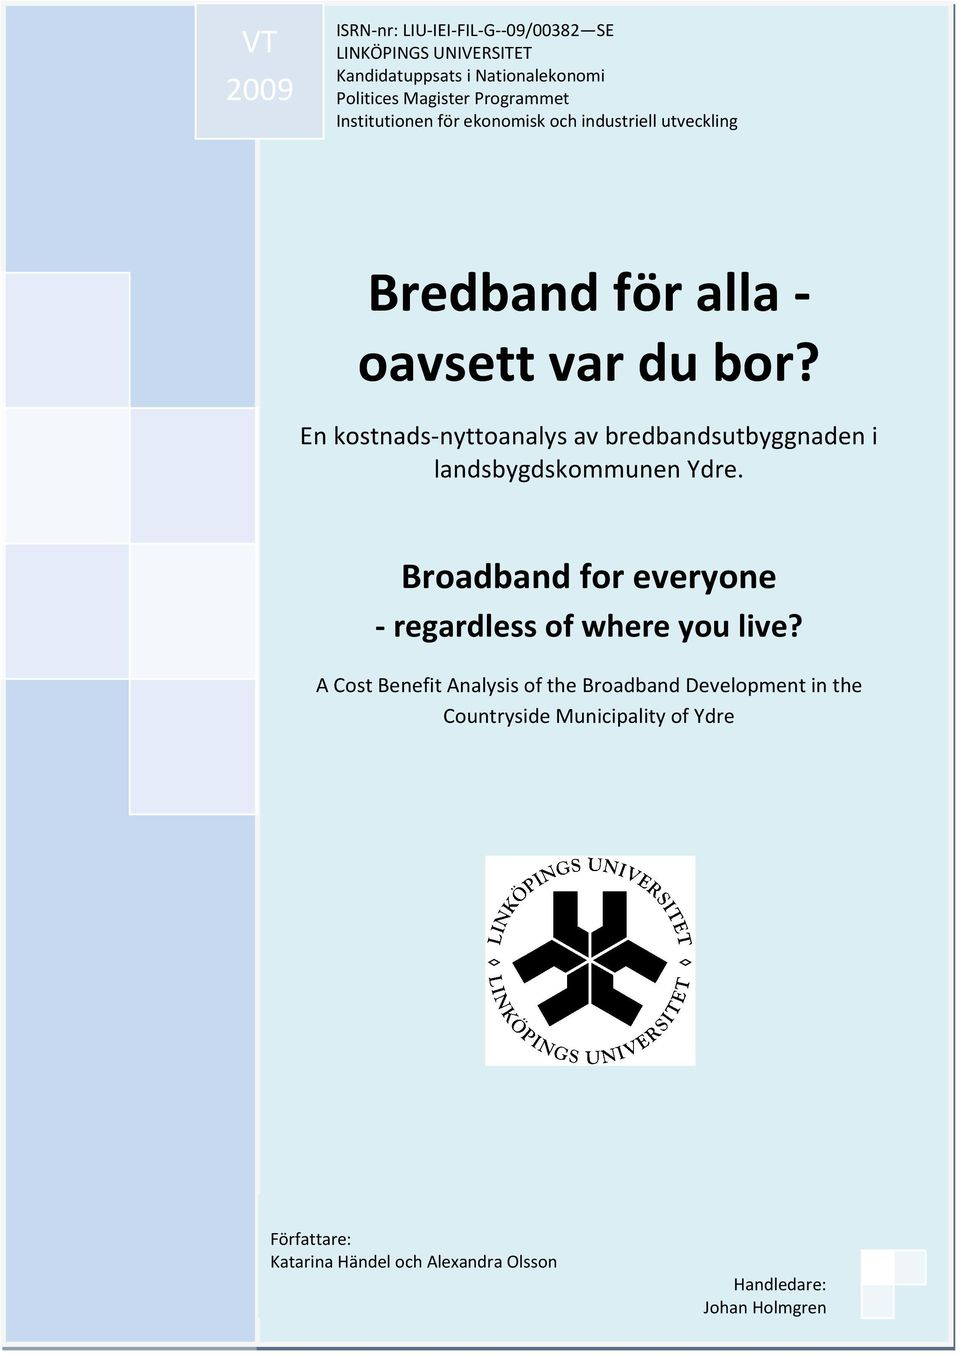 En kostnads-nyttoanalys av bredbandsutbyggnaden i landsbygdskommunen Ydre. Broadband for everyone - regardless of where you live?